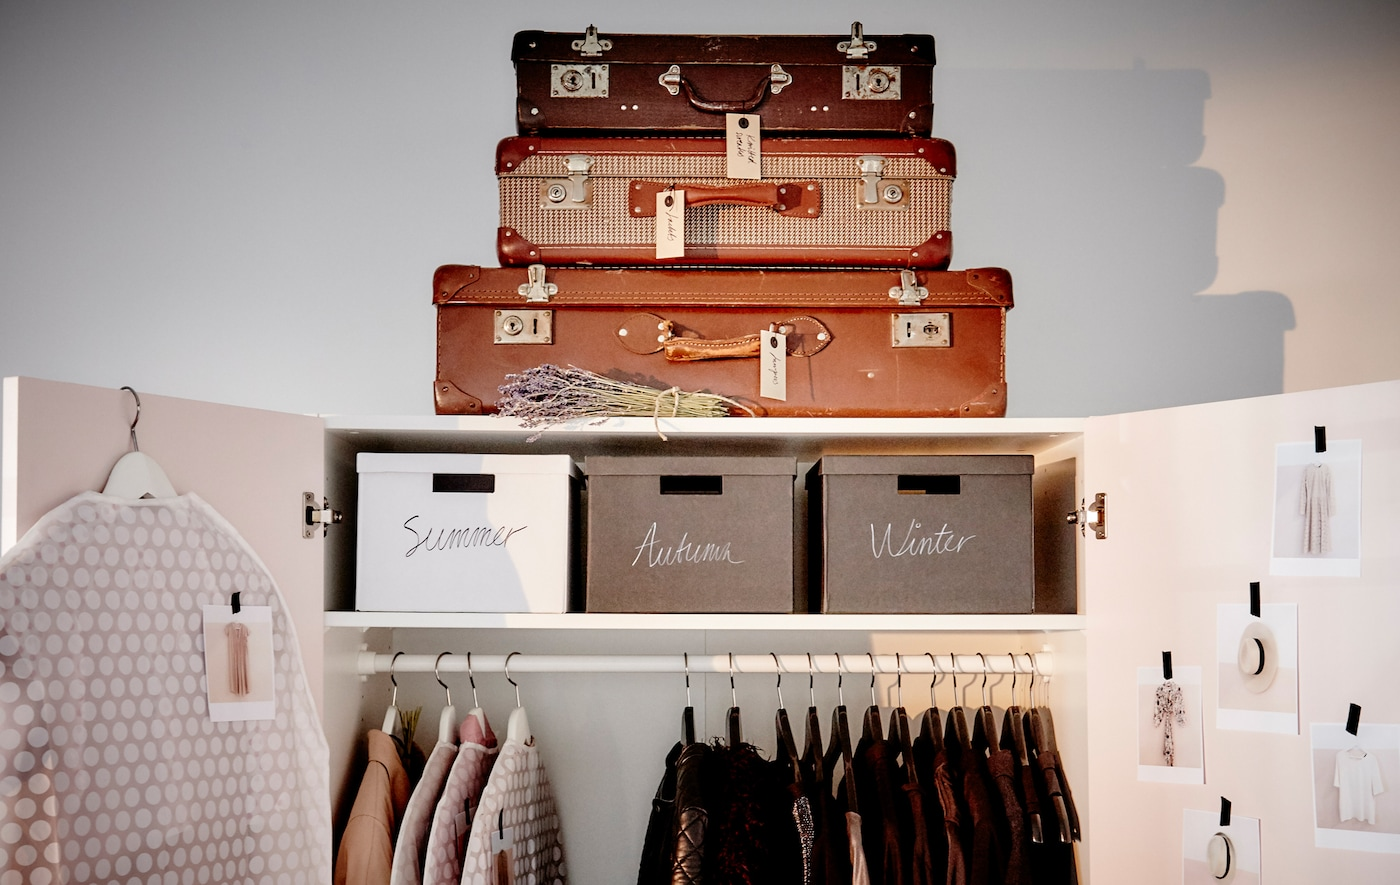 An open wardrobe with clothes on a rail, boxes on a shelf, and a stack of vintage suitcases on top.